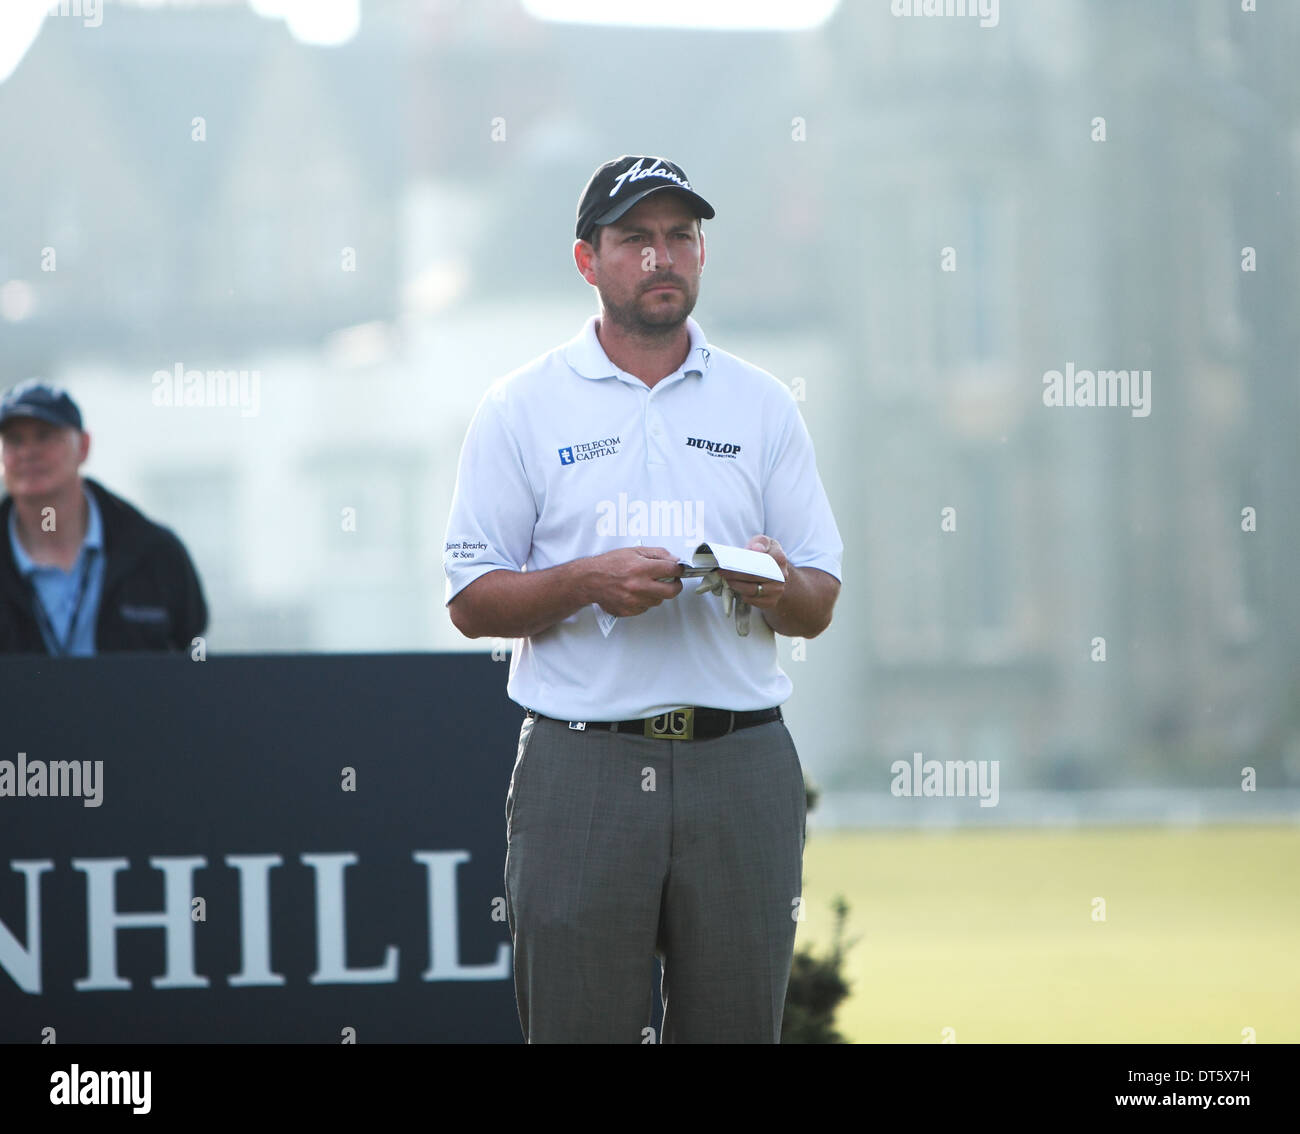 David Howell,winner of The Dunhill Cup 2013,St andrews Old course - Stock Image